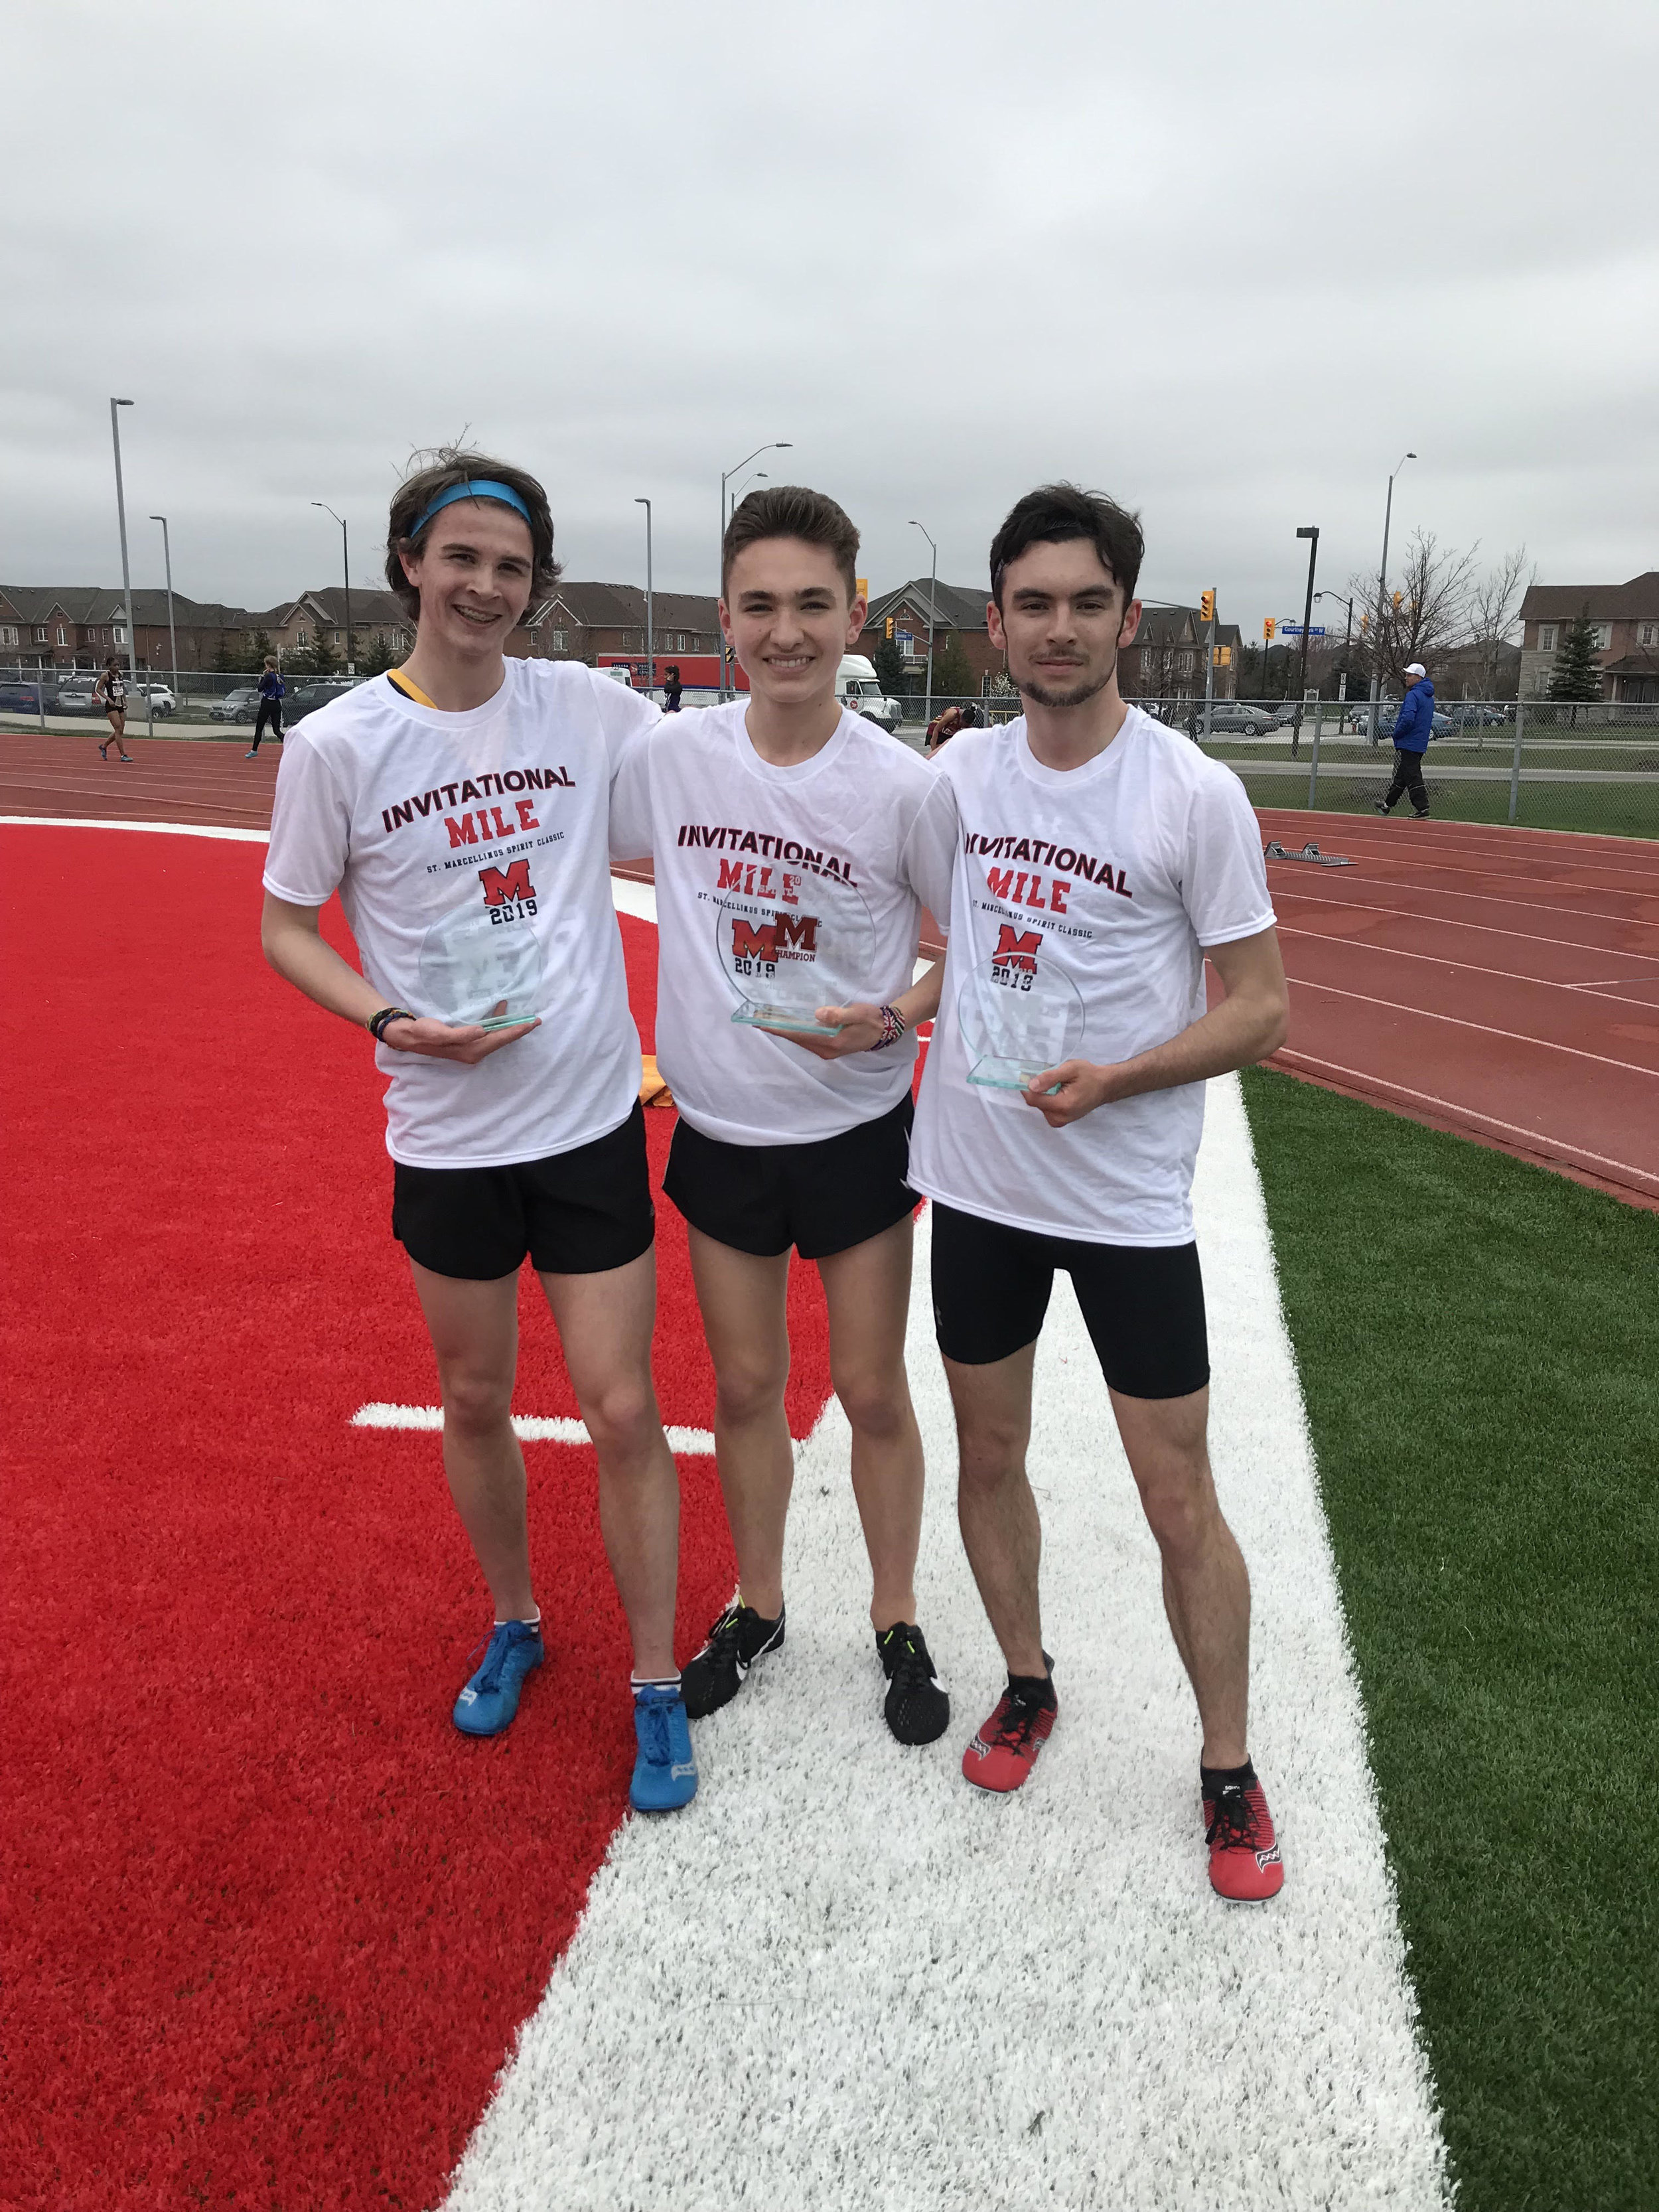 Top 3 in The St. Marcellinus Invitational Mile in 2019: Bronze-Jack Wierzbicki, Brooklin SS-4:32.70. Silver-Ben Miske, Port Credit-4:30.80. Champion & pictured above-Max Davies, Northern-4:25.50